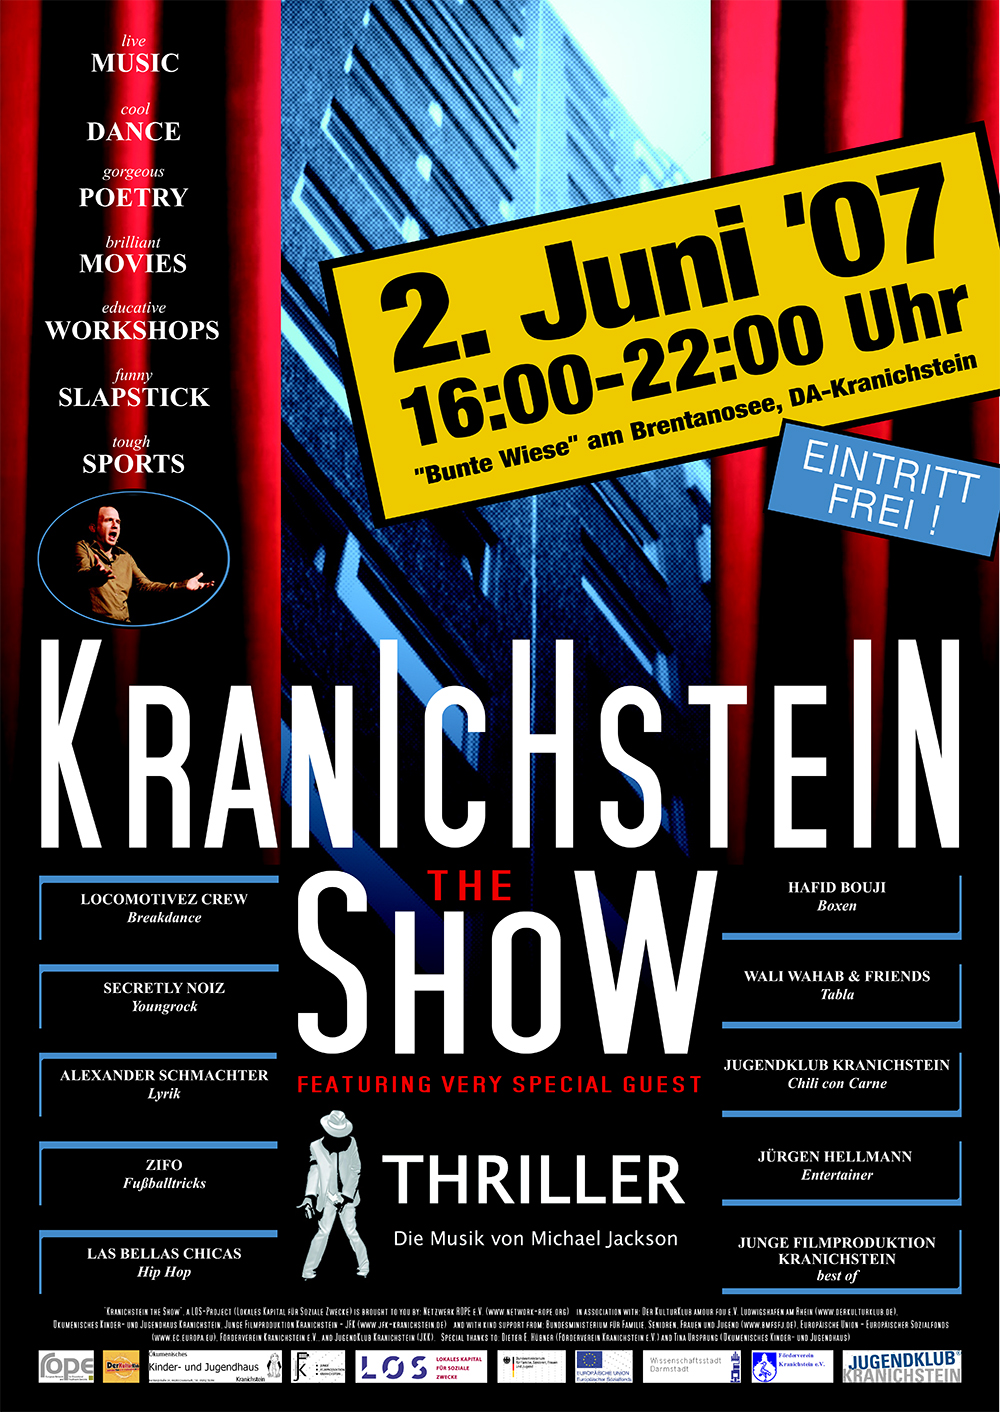 /rope2016/Kranichstein%20the%20Show%2002.06.2007